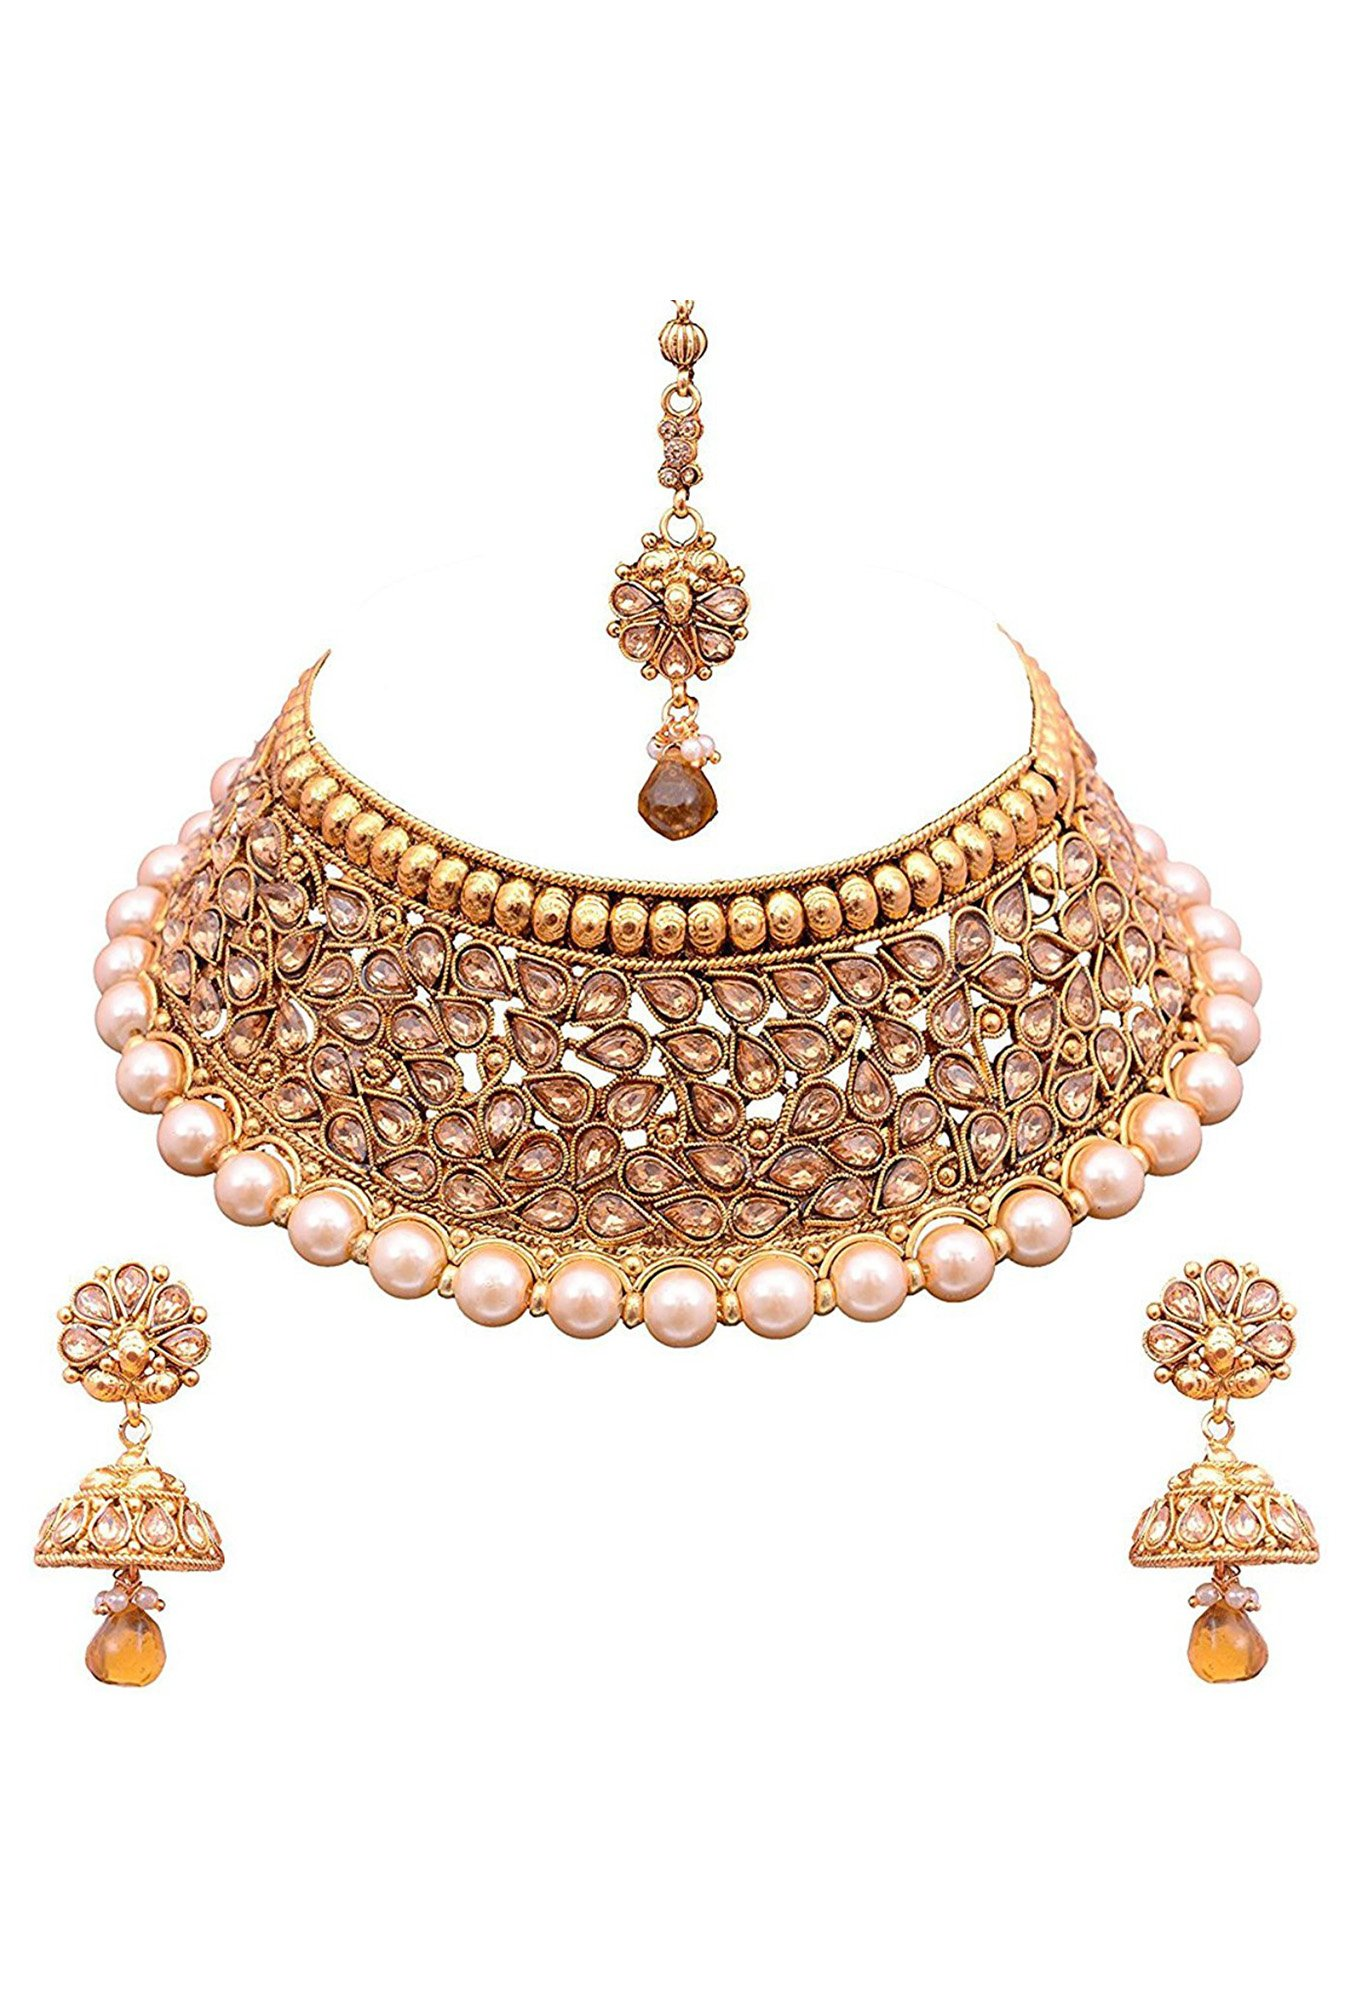 kollamsupreme meenakari necklace enamel designer set buy plated gold